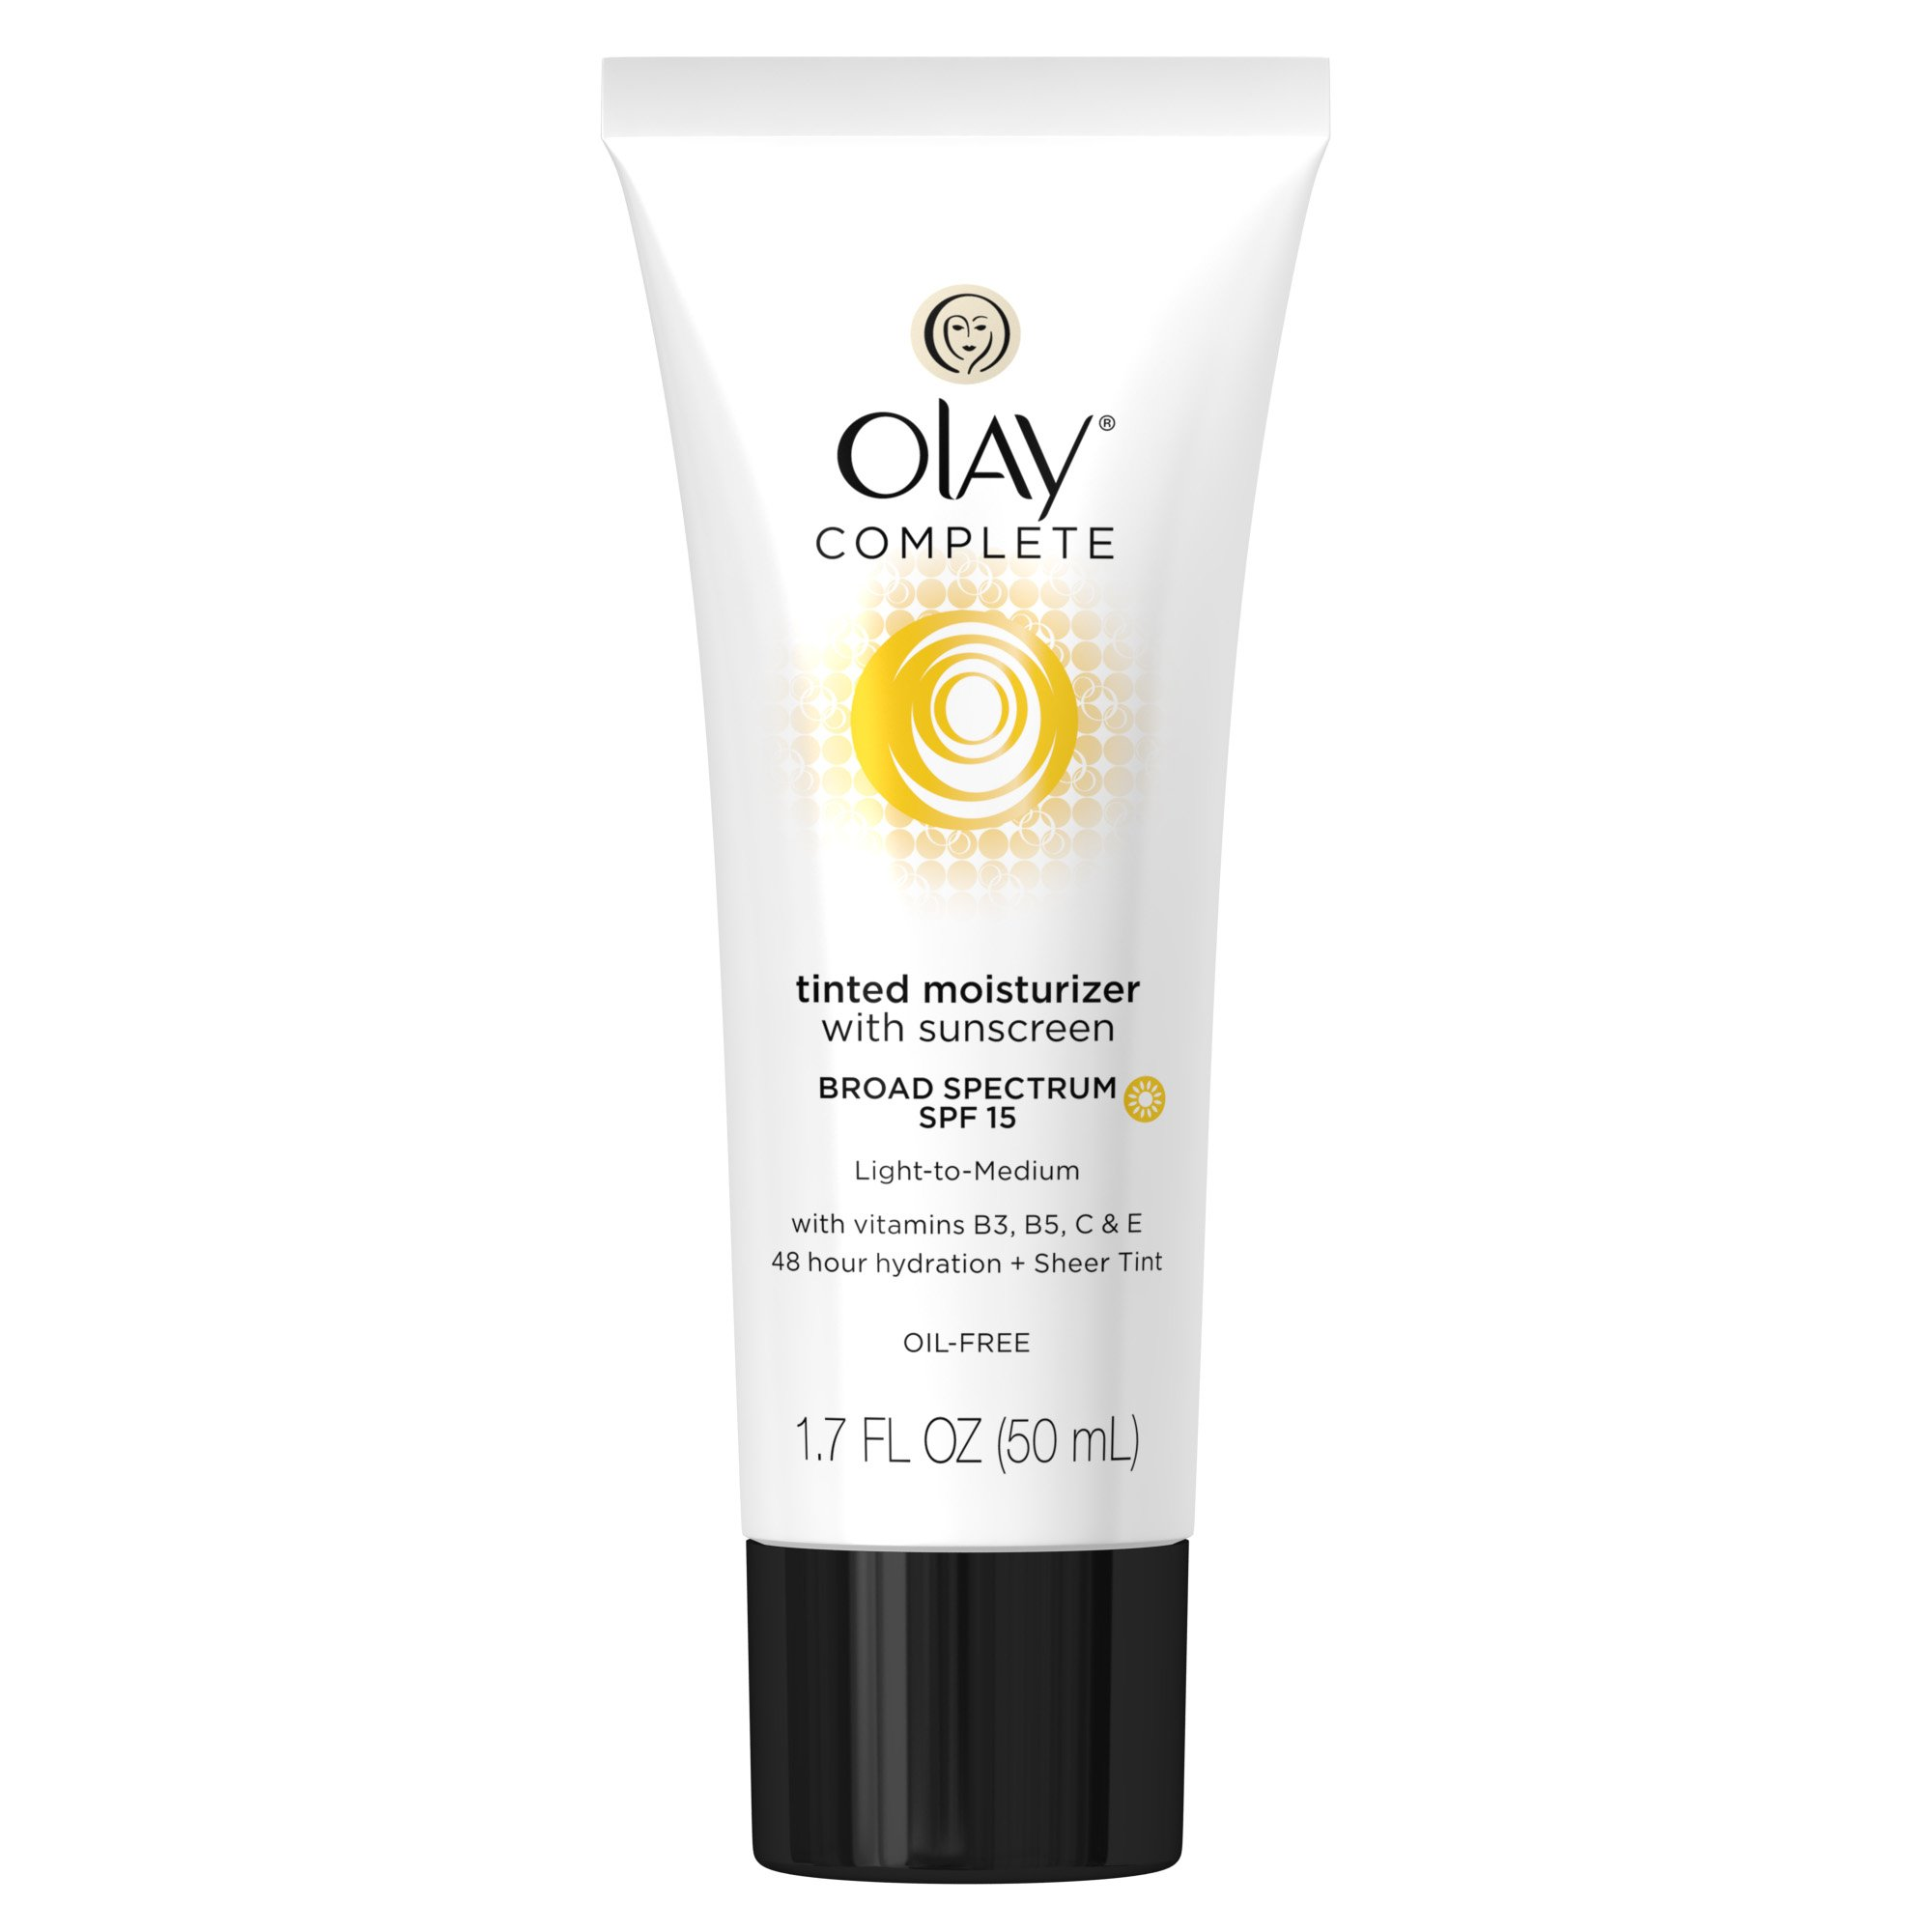 Browse Products Containing Methylparaben Skin Deep Cosmetics Olay Total Effects Day Cream Normal Spf 15 8g Old Product Complete Tinted Moisturizer Light To Medium 2016 Formulation